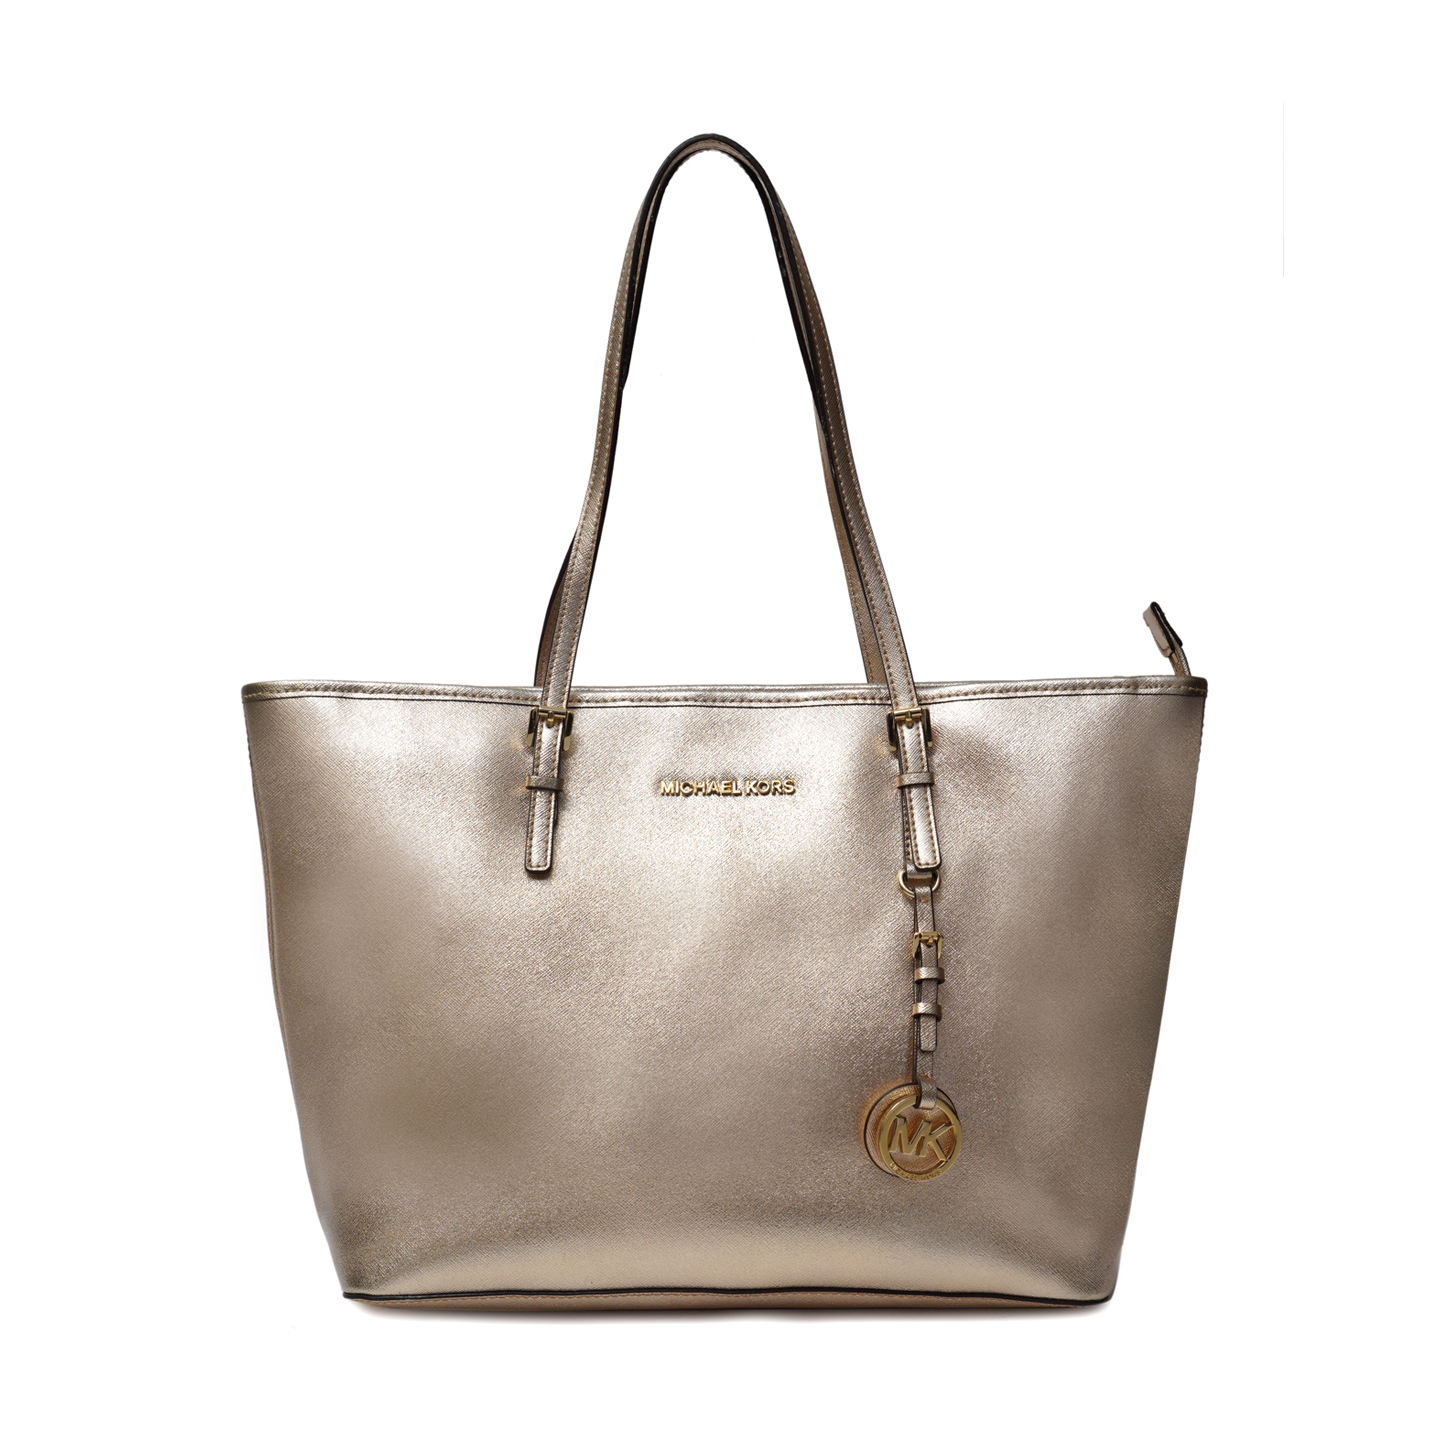 98e56e98b850 Michael Kors Jet Set Metallic Gold Tote - LabelCentric